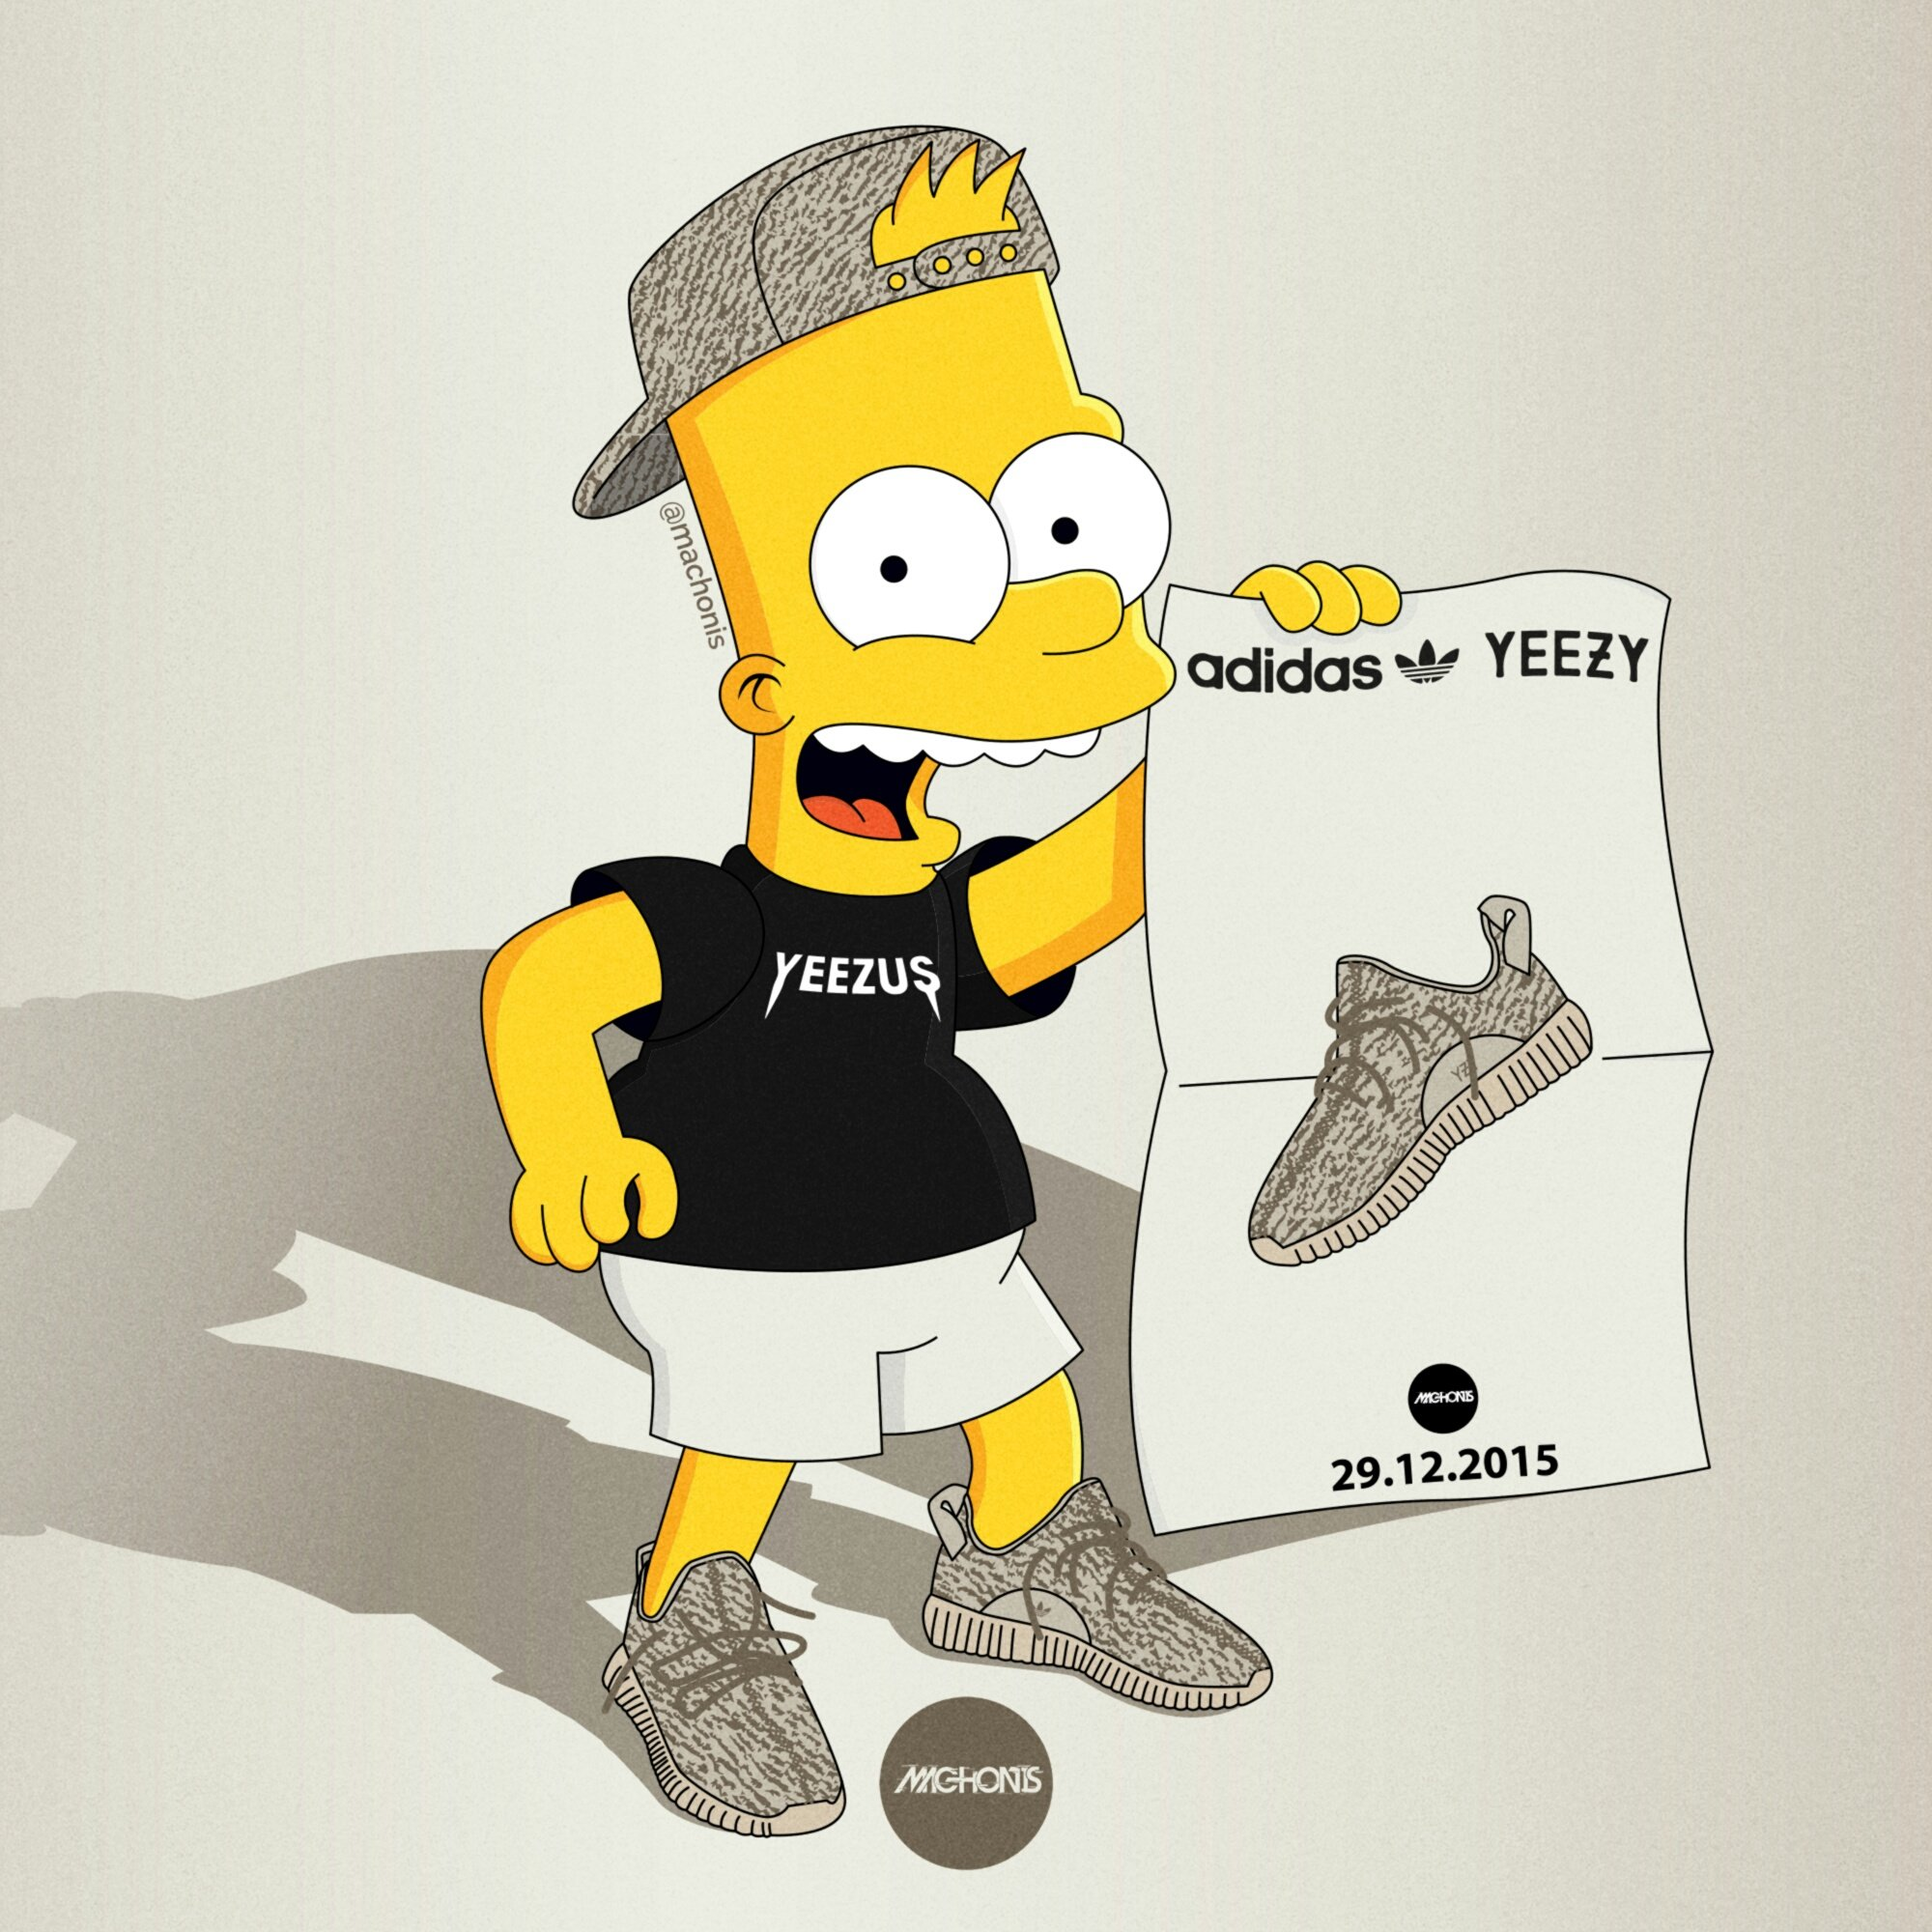 Simpson Fashion as well 2376409 Floating Hypebeast also 1080 X 1080 Cartoon Ai0aestcFX 7CZ6SYzxgzPCgIvQXRv3ls3i4QB5 BjYJM together with Group also Ladies Get You A 21 Savage. on bape cartoon person